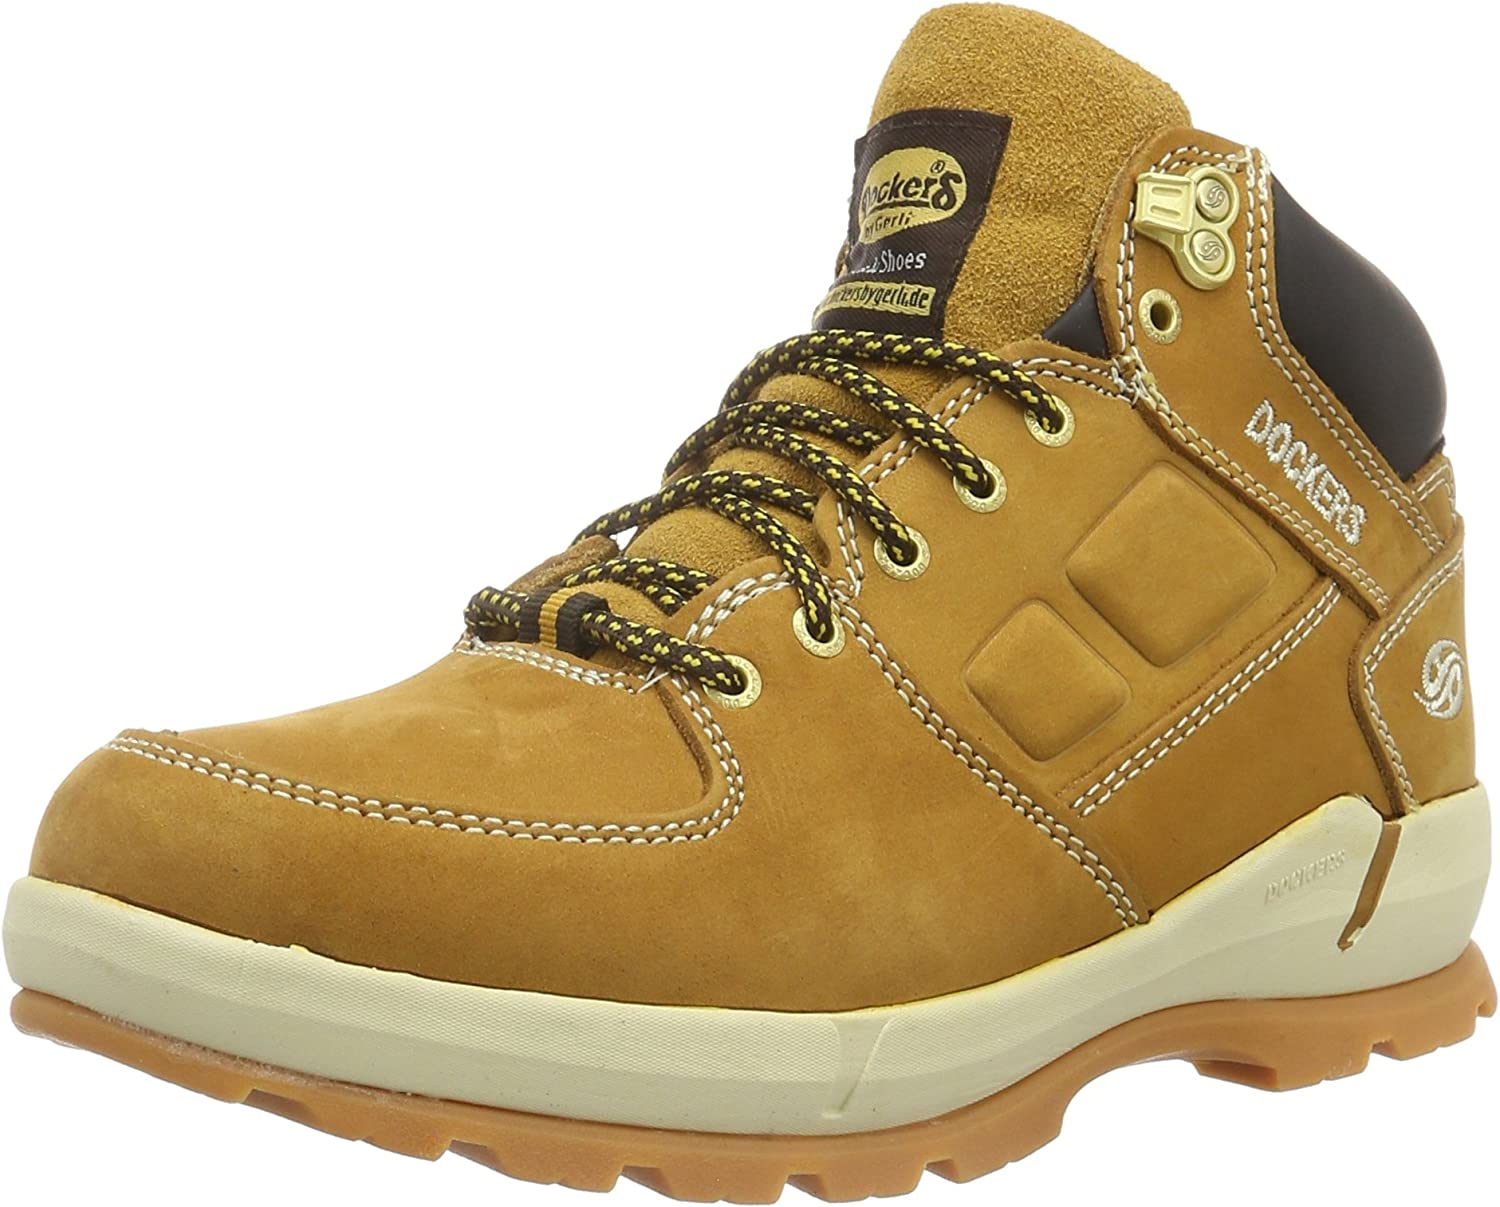 Dockers 39or003, Botines para Hombre, Amarillo (Golden Tan 910), 42 EU